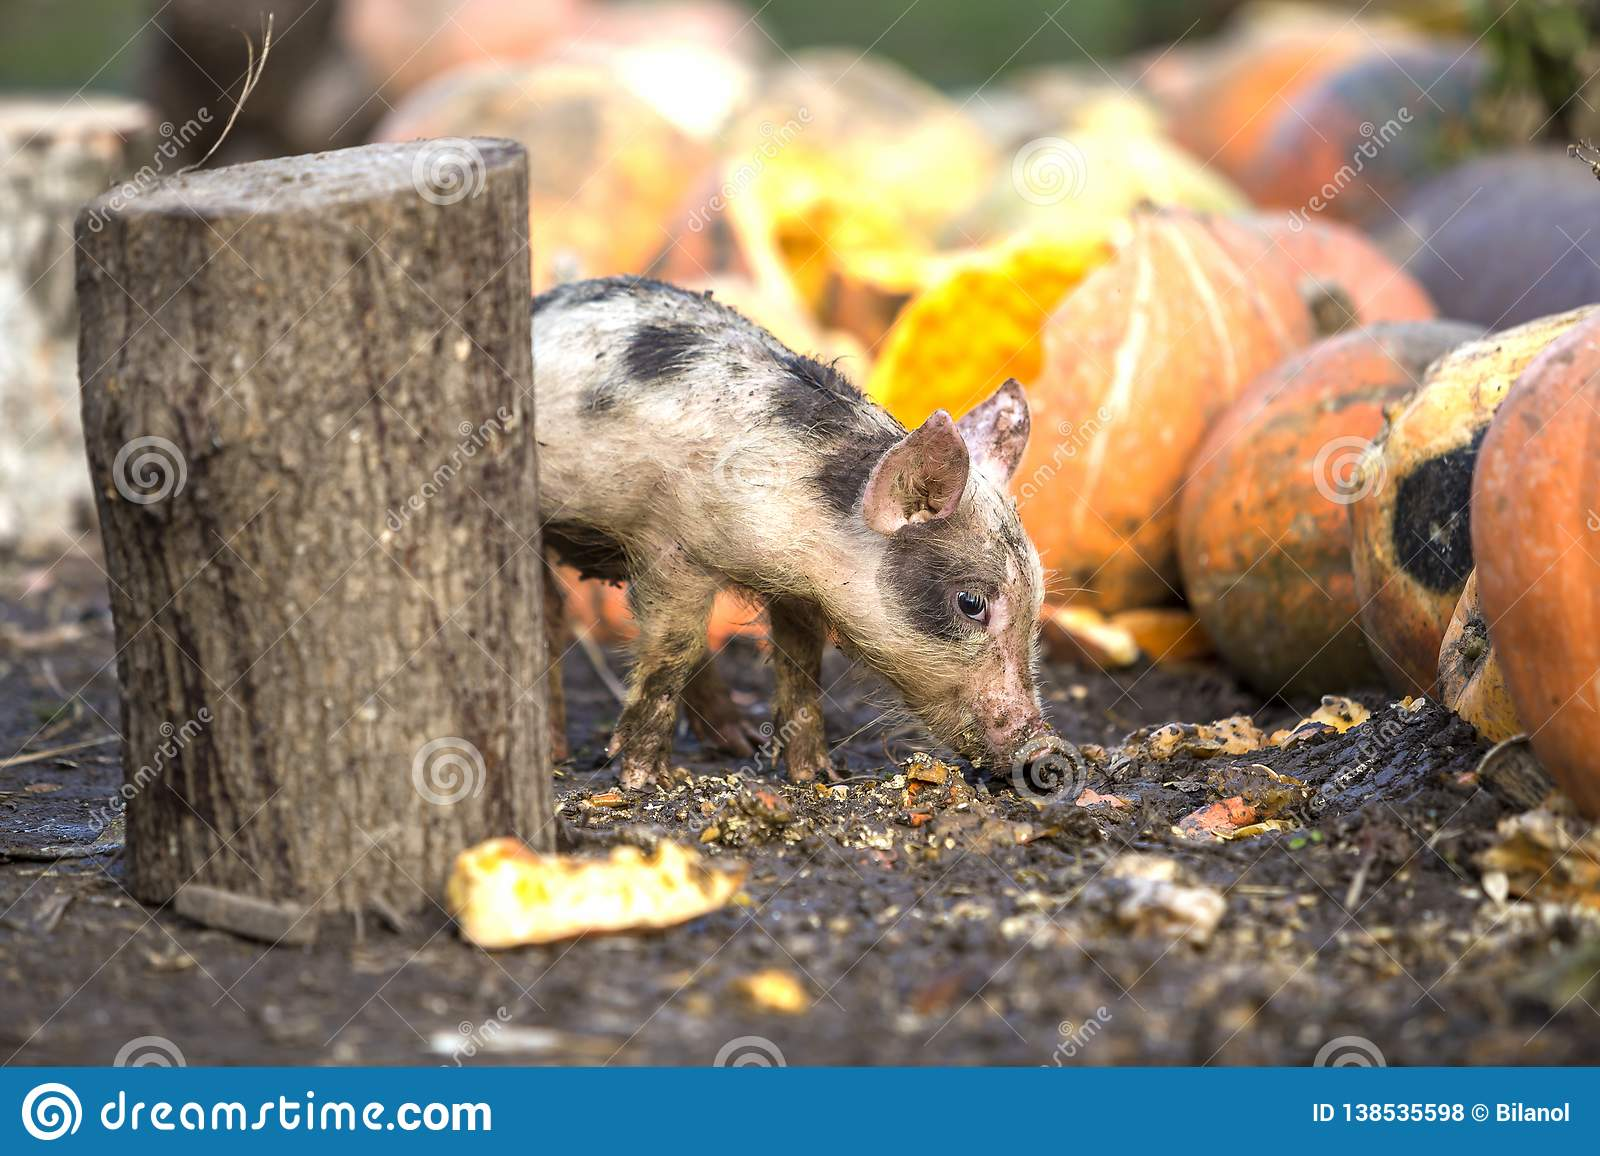 Small young funny dirty pink and black pig piglet feeding outdoors on sunny farmyard on background of pile of big pumpkins. Sow